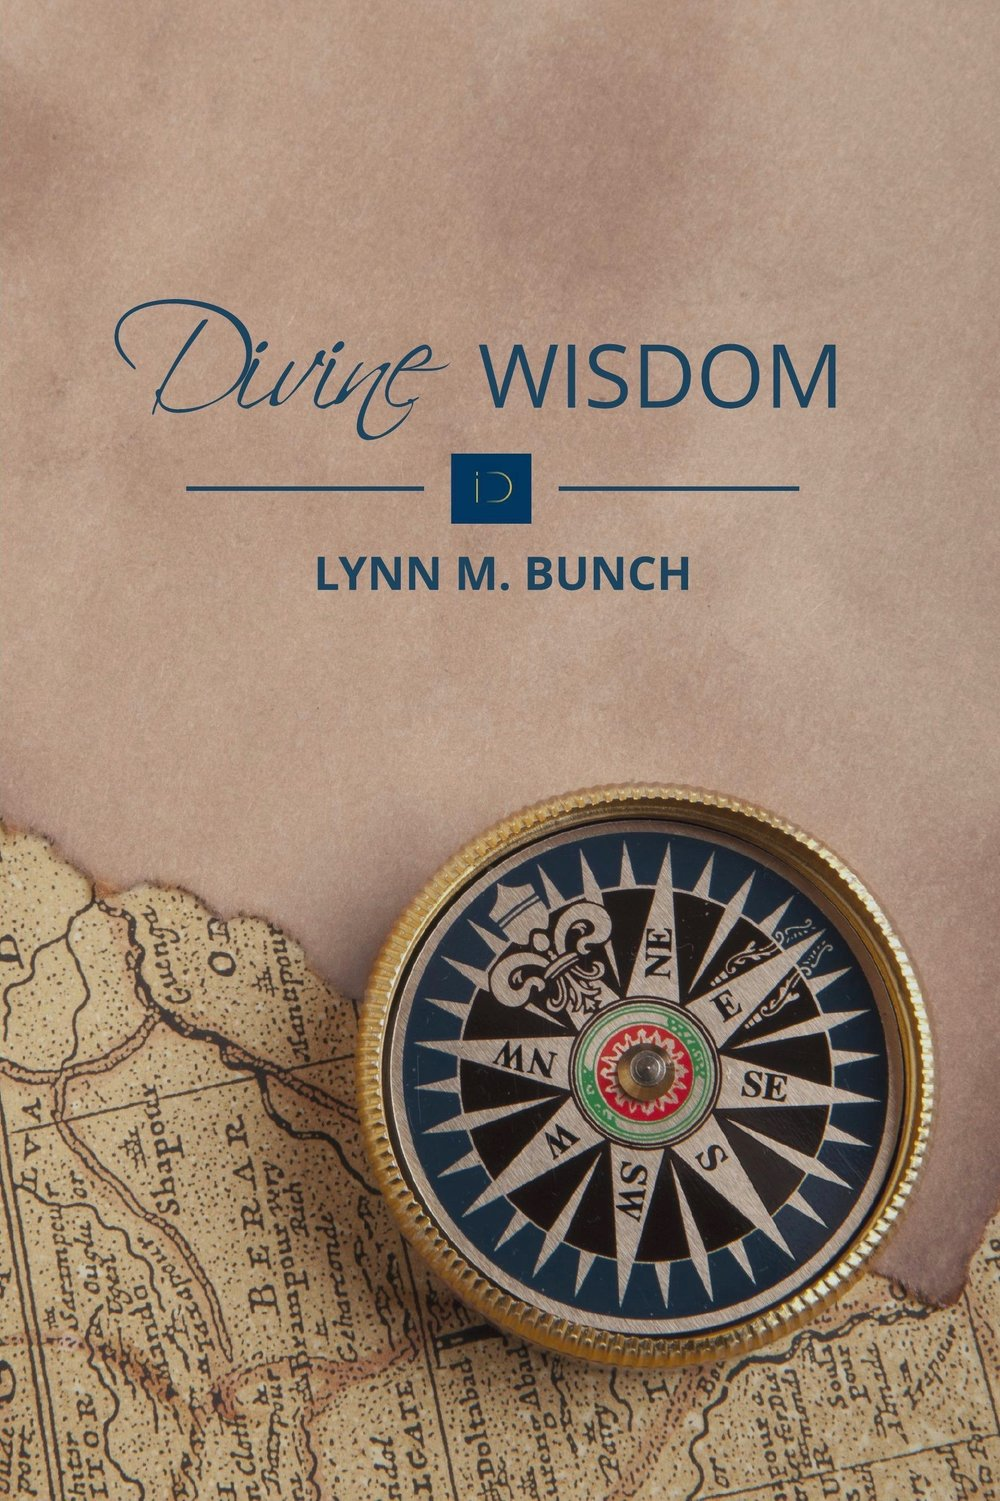 Divine Wisdom   offers in-depth concepts developed to transform your life personally and professionally in a curriculum that is easy to follow and understand. We as a society hunger for different methods of teaching to heal the issues that keep us separated from Source, and we all have many different ways in which we learn and heal.